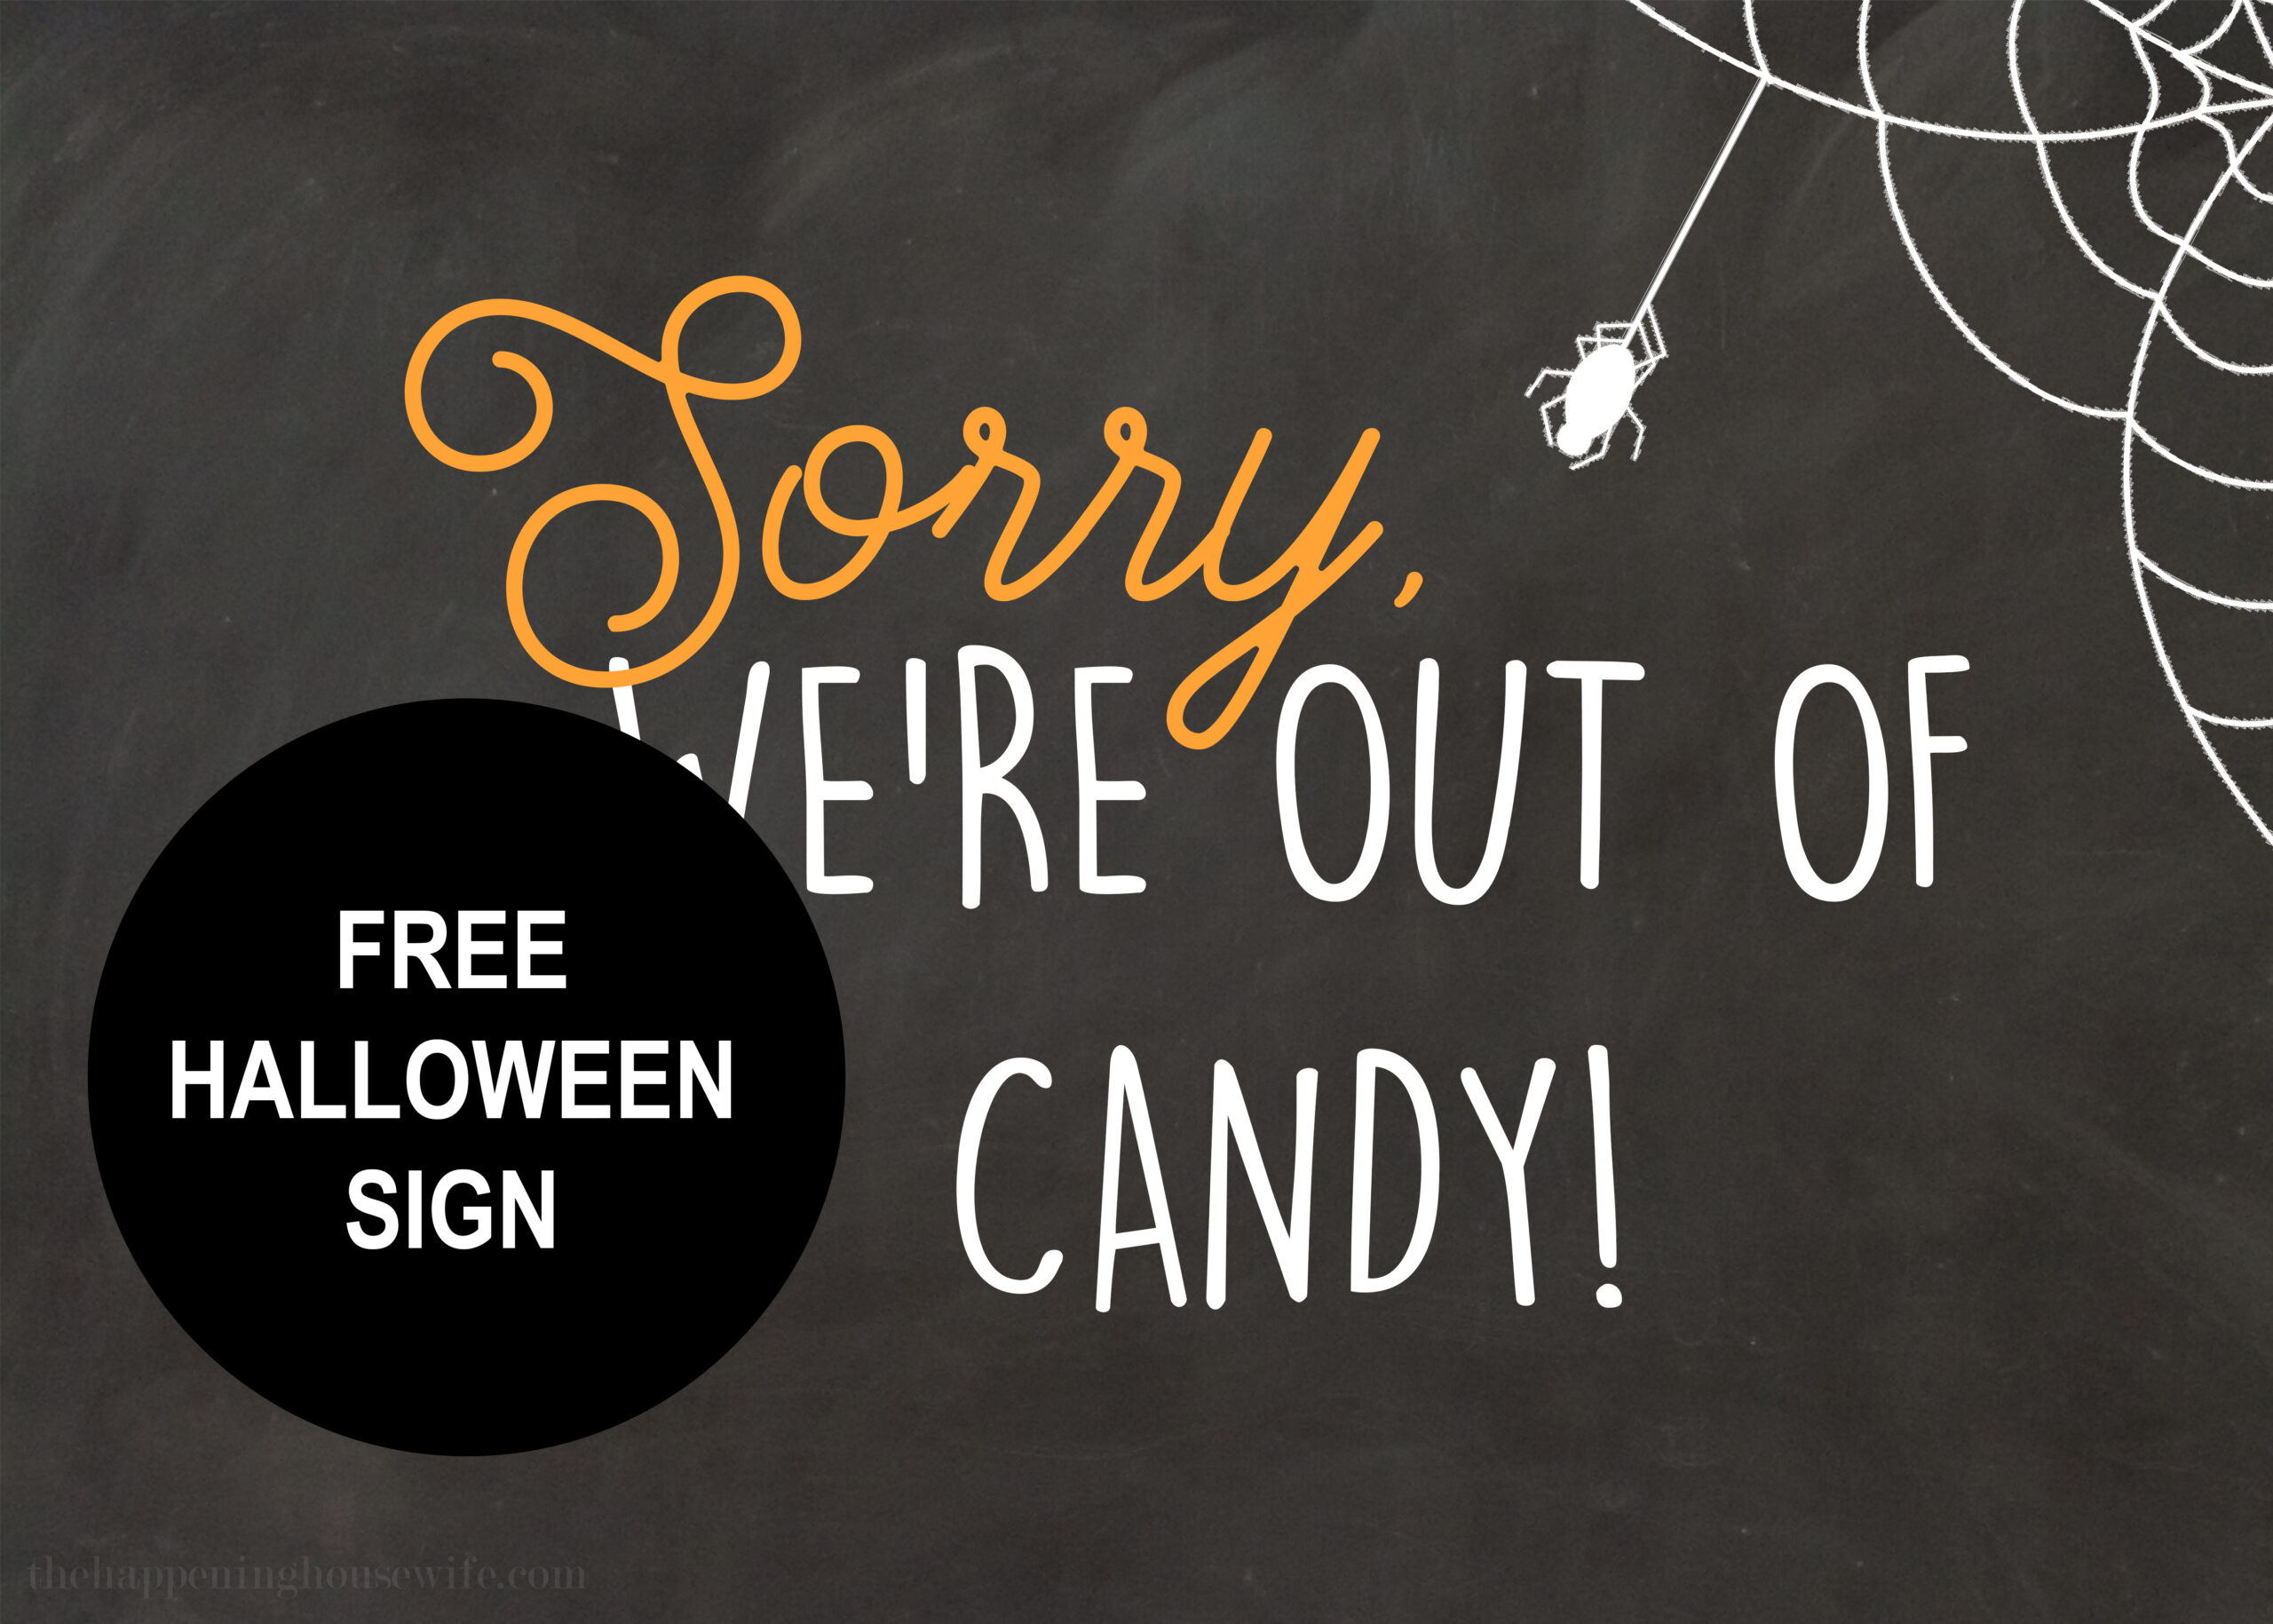 out-of-candy-sign